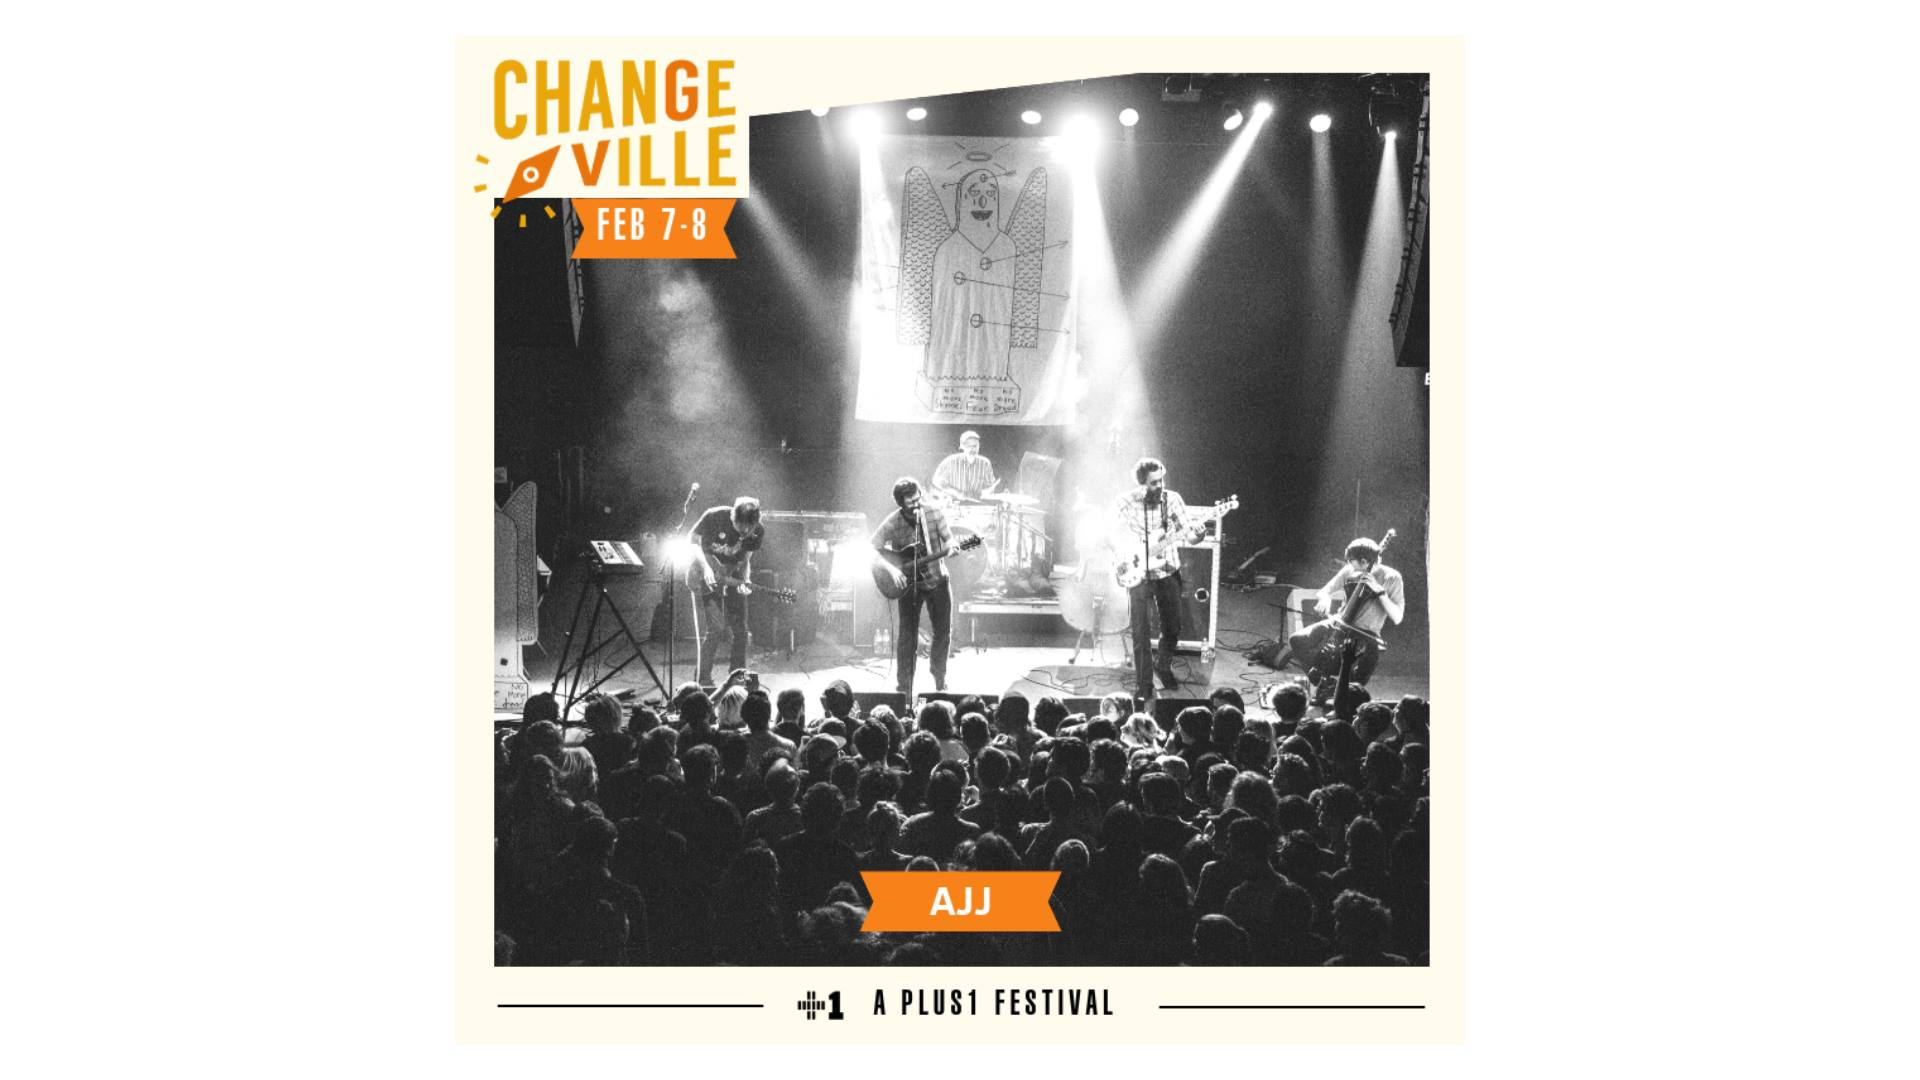 """Featuring AJJ ! and more! The Changeville Festival is a downtown music & arts festival featuring local and national artists united by a passion for social change. The two-day festival will take place at venues around the city's downtown such as Bo Diddley Plaza, The Hippodrome, High Dive, Wooly/Atlantic, Civic Media Center, Volta, & more.  Festival passes are available now at changeville.us/tickets   Hailing from Phoenix, Arizona, *AJJ* has released four full length albums since 2005. Their signature folk-punk sound oftentimes features deceptively upbeat instrumentals accompanying humorously macabre lyrics. It's not unusual for AJJ songs about death, racism, and similar topics to be juxtaposed against a plucky upright bass line. Their Facebook description boasts, """"We're super good, I promise."""" In an effort to relinquish any connection to former President Andrew Jackson and to avoid disrespecting Muslims, the former Andrew Jackson Jihad rebranded themselves to AJJ in 2016. """"As the world changed, and as we changed as people, it just got more difficult to give a convincing answer for why our band was called that […] The act of striving to do better is a constant theme in our work, that's where the name [change] was coming from,"""" frontman Sean Bonnette told AV Music.  Through a charity partnership with Plus 1 , $1 from each ticket sale will be donated to two different charity organizations. Local organization Gainesville Girls Rock Camp and national organization CEEAS (Center for Educational Excellence in Alternative Settings) have been chosen as 2019's charities. Changeville will also be collecting canned goods and donations for Peaceful Paths and Grace Marketplace.   Changeville is a two-day social change festival, in partnership with UF College Of Journalism & Communications annual frank conference in downtown Gainesville that brings together students, professionals and artists across a variety of platforms. The festival includes music, comedy, award-winning films, t"""